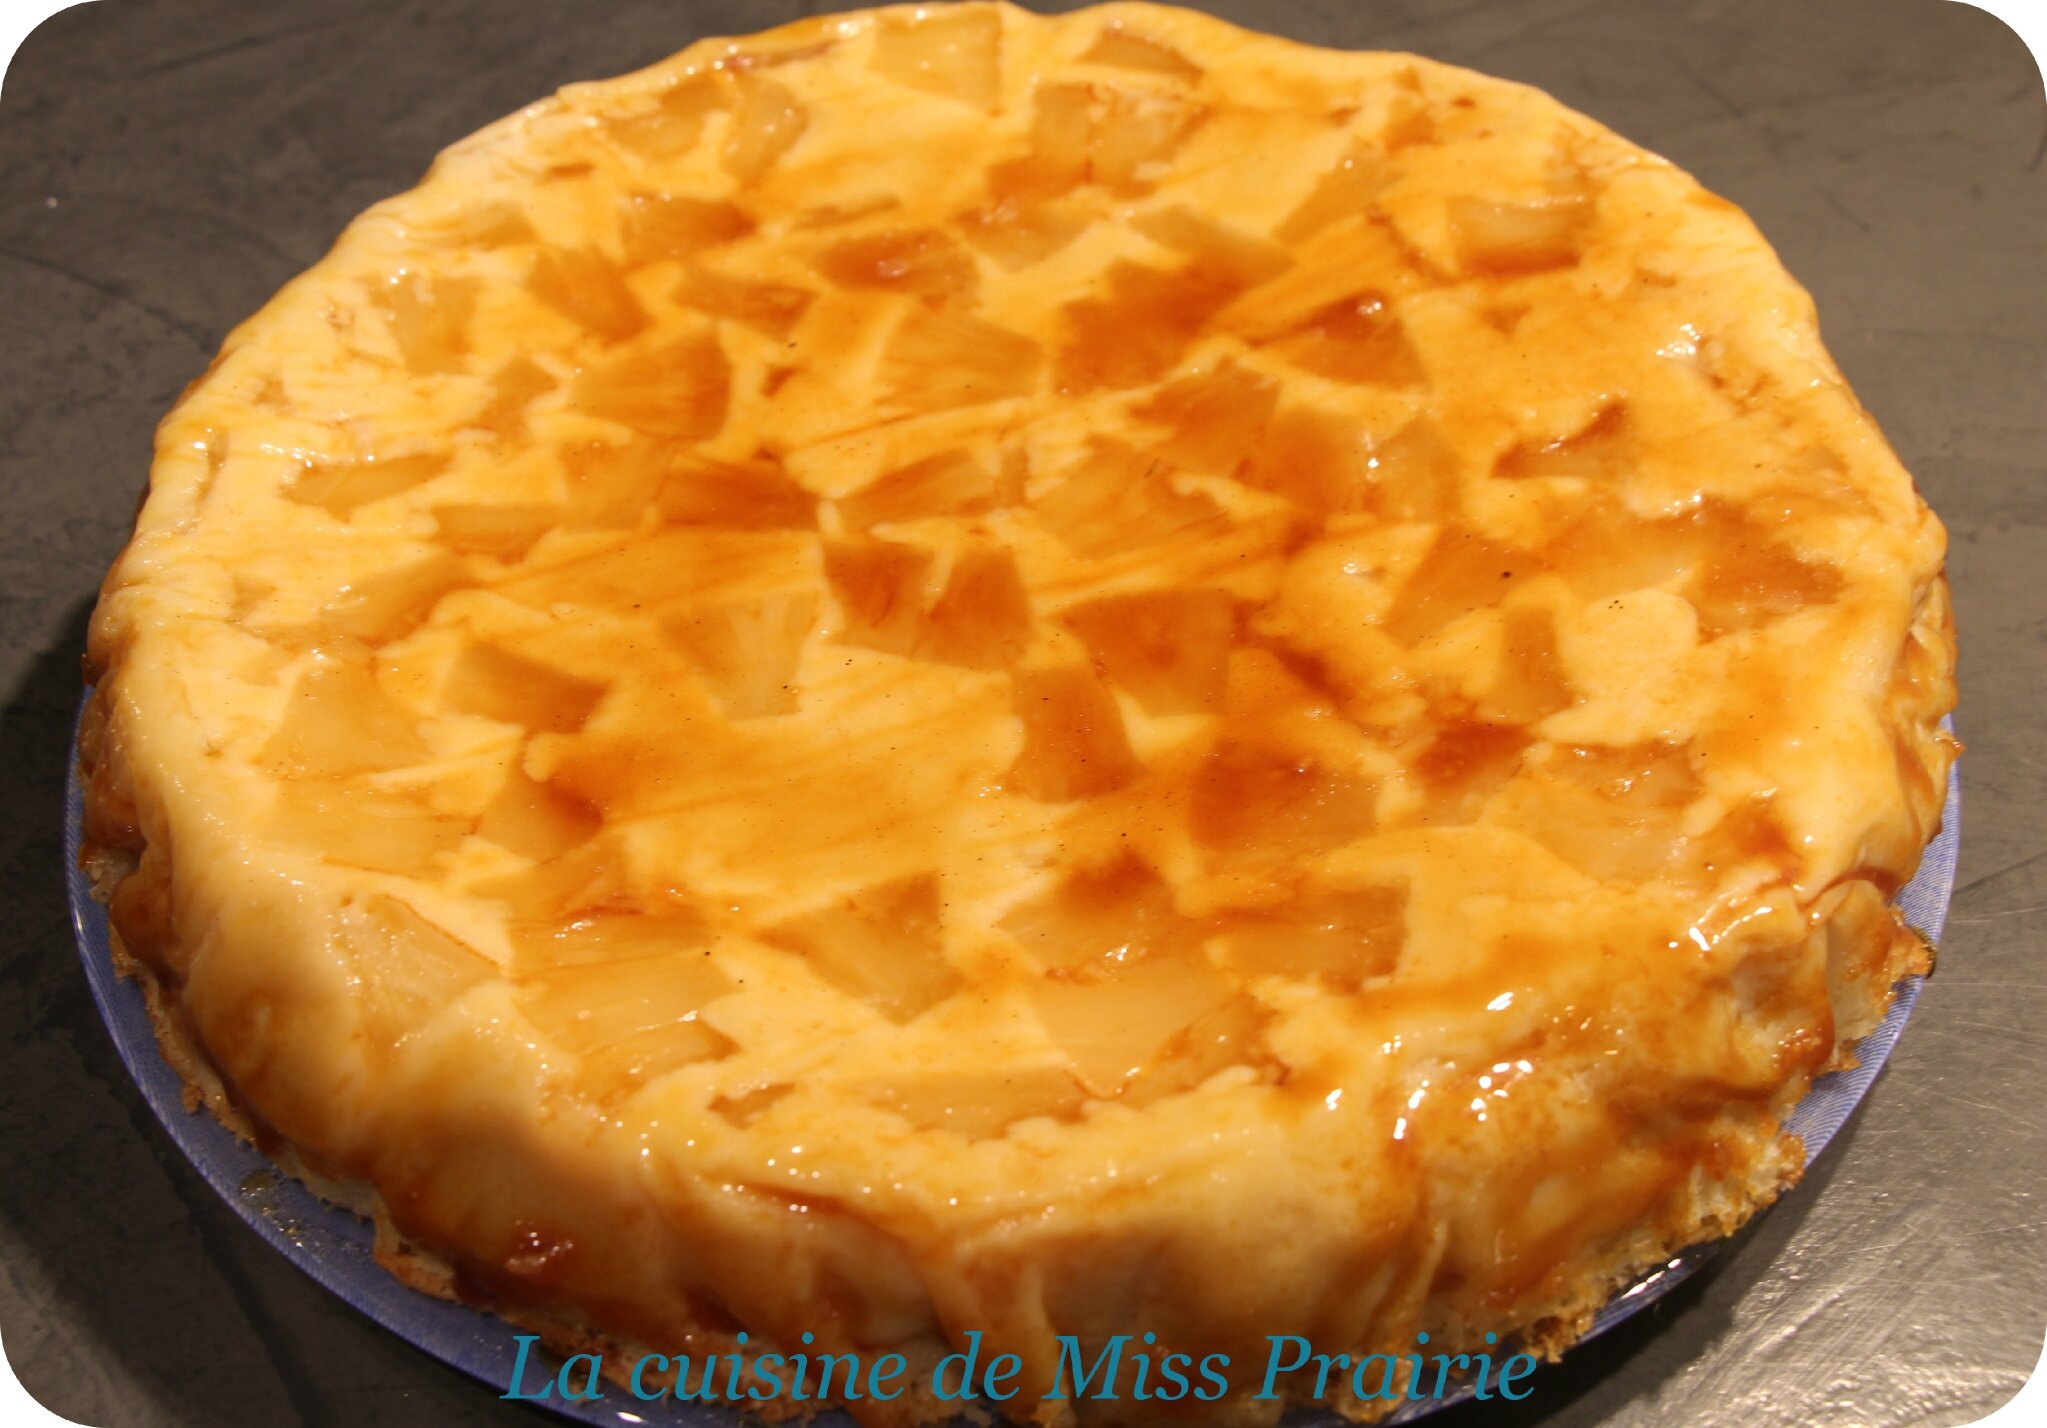 Gateau noix de coco ananas home baking for you blog photo - Acheter thermomix sans reunion ...